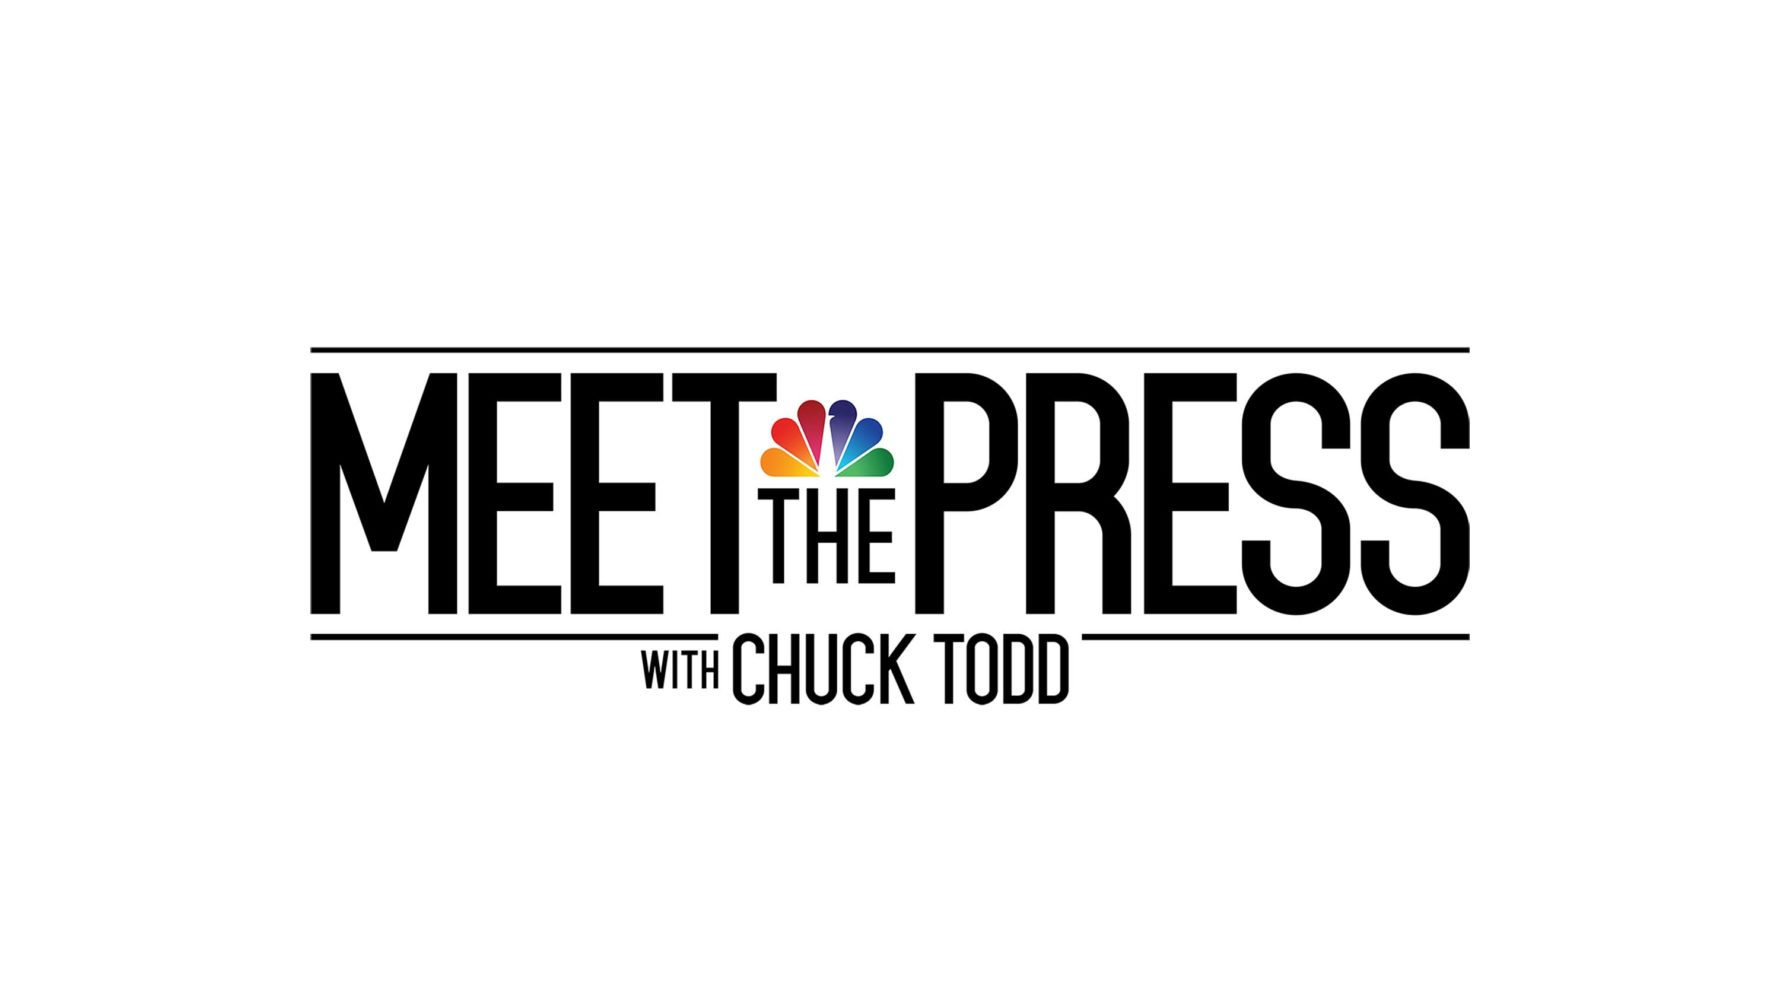 Joshua johnson on meet the press wamu on the july 15 episode of meet the press chuck todd nbc news political director and moderator of the broadcast introduced joshua johnson host of 1a m4hsunfo